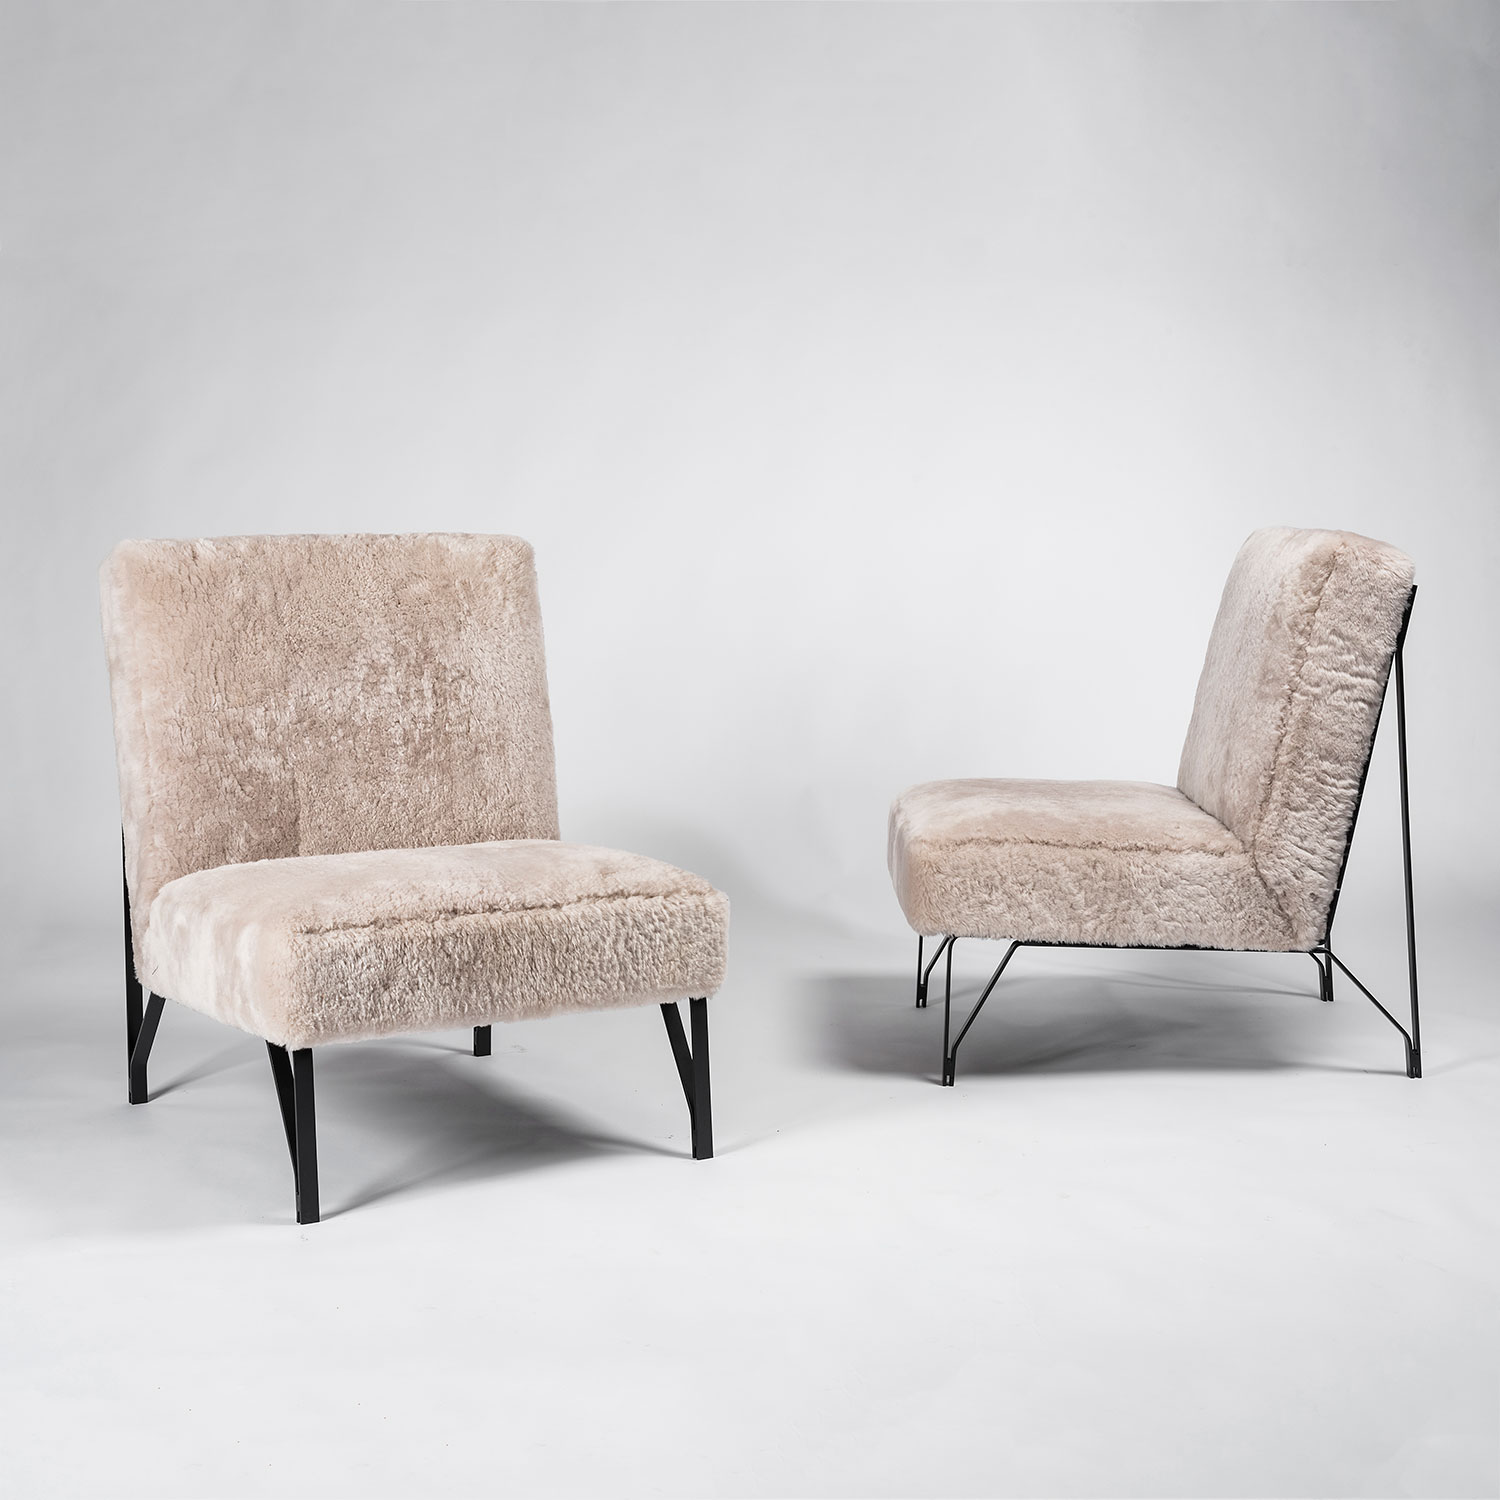 Eleanora Peduzzi-Riva |  Pair of chairs